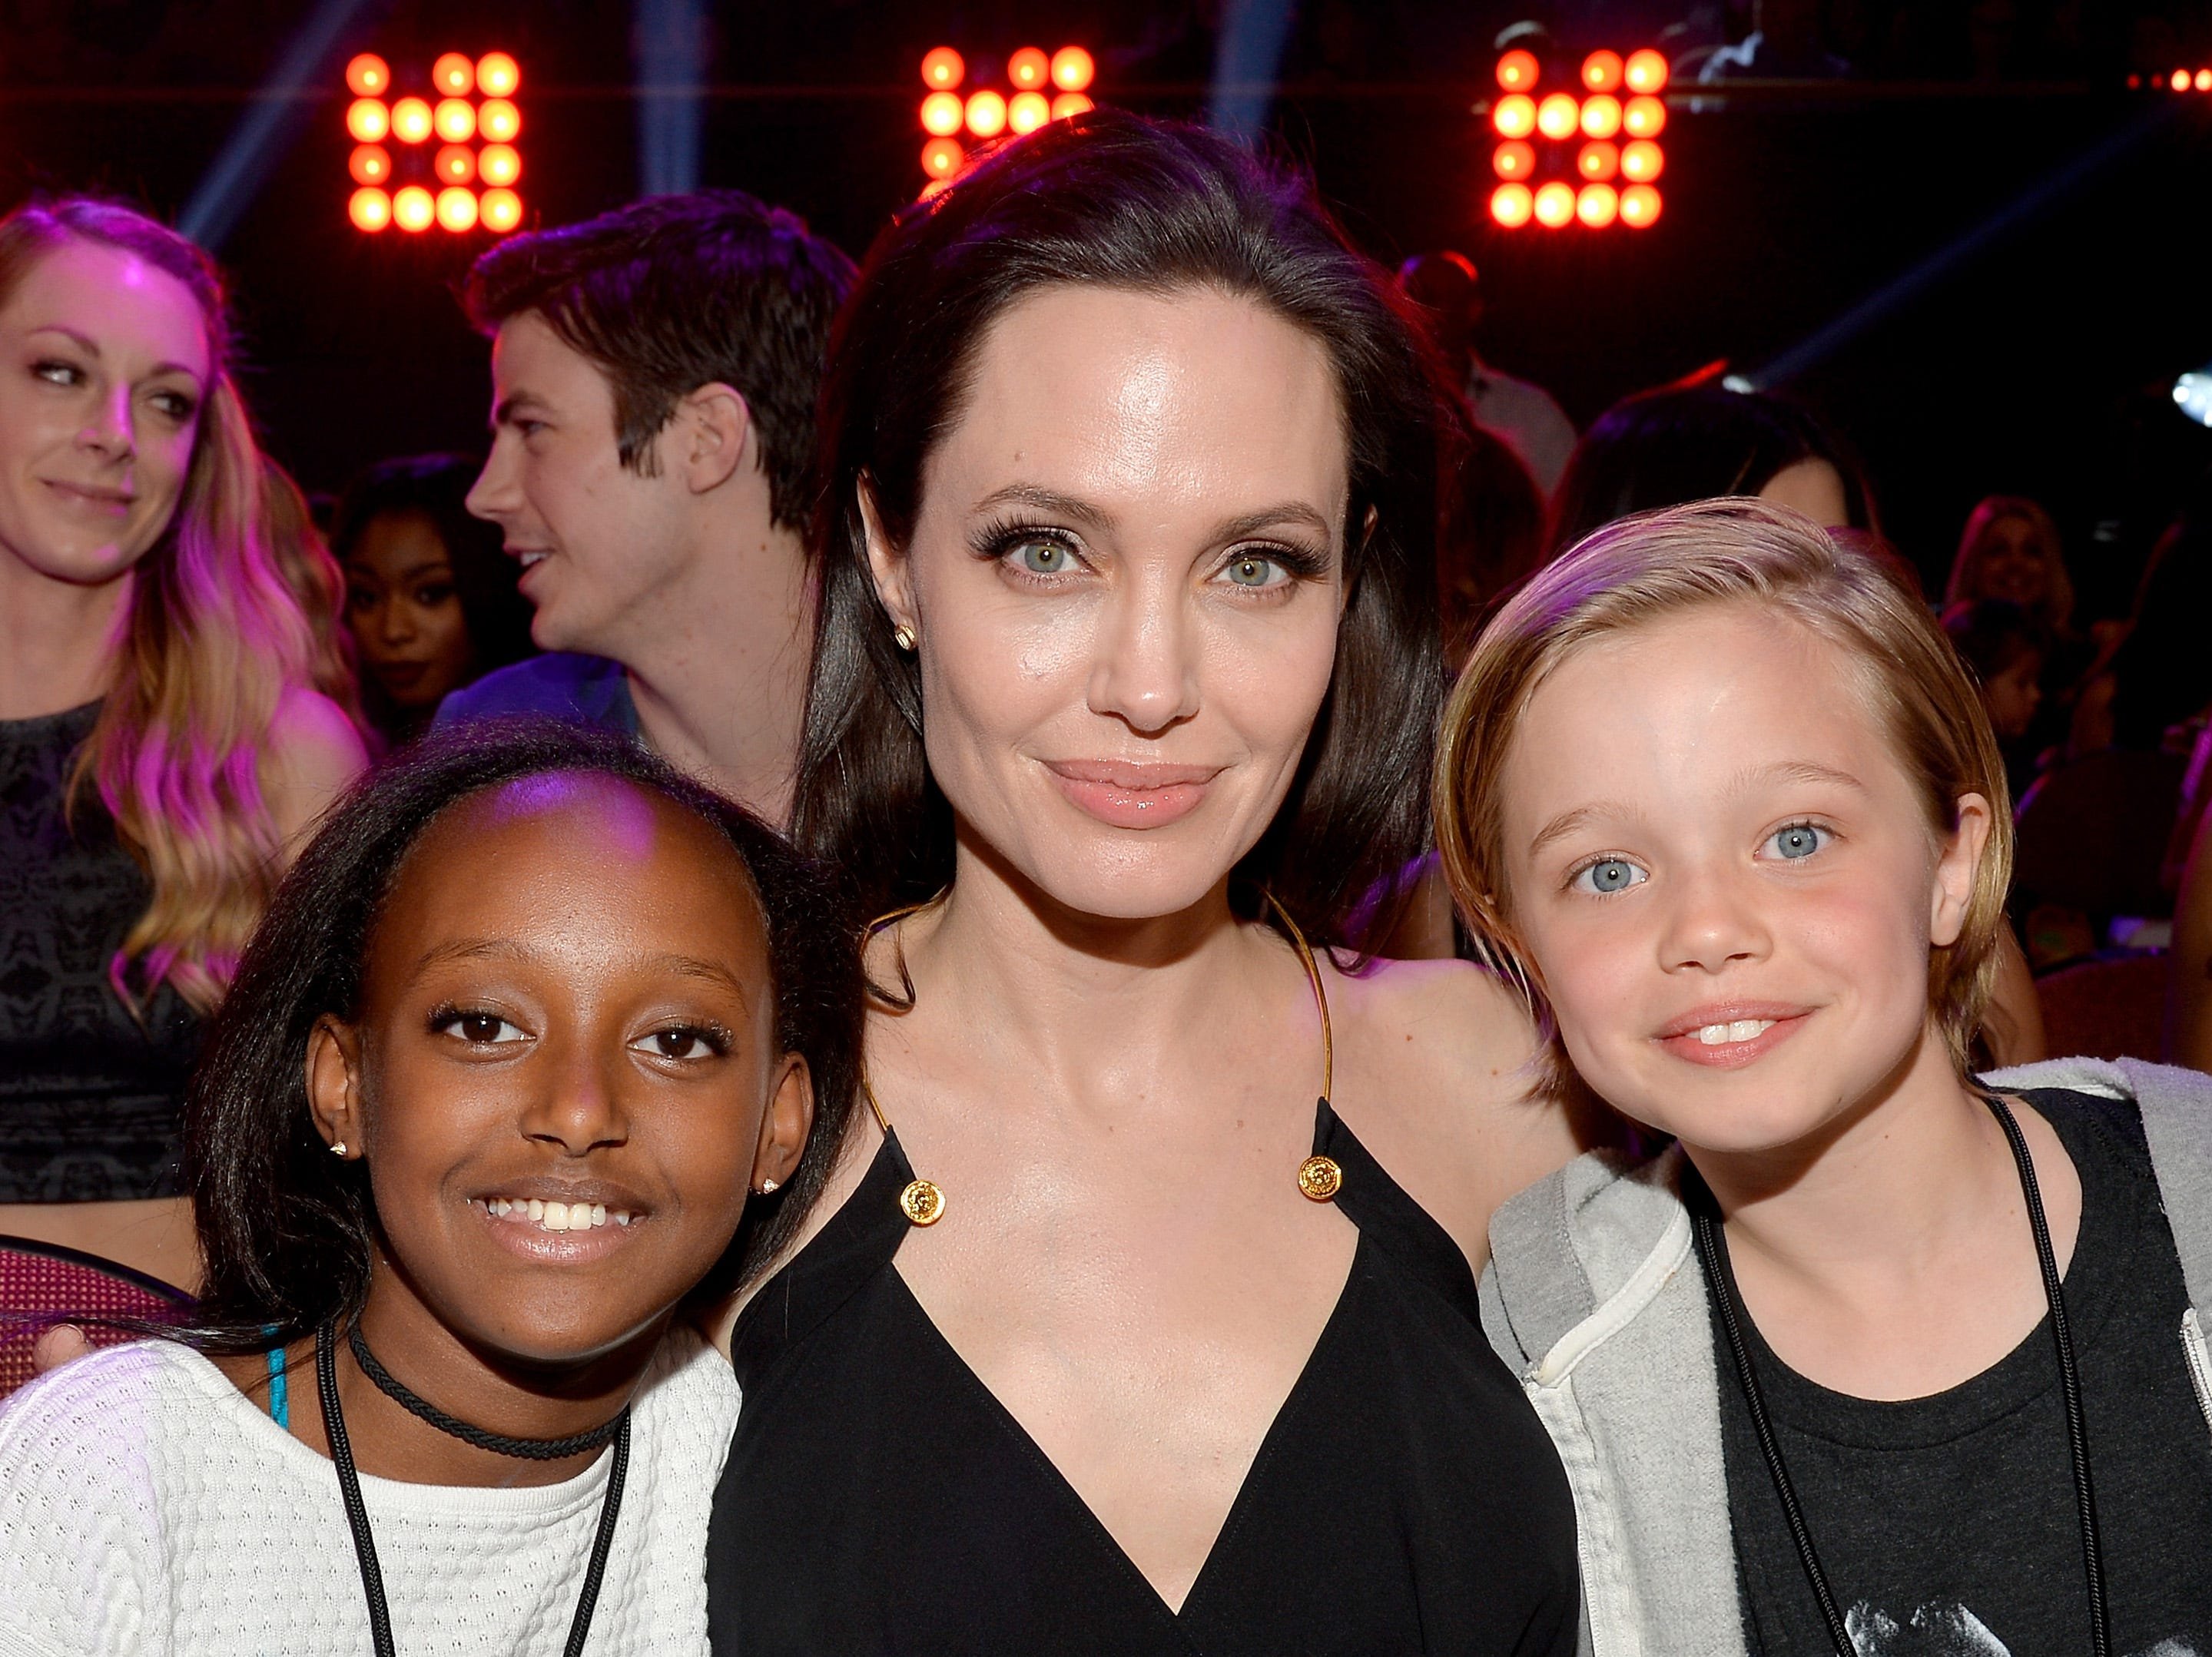 INGLEWOOD, CA - MARCH 28:  Actress Angelina Jolie with Zahara Marley Jolie-Pitt and Shiloh Nouvel Jolie-Pitt in 2015